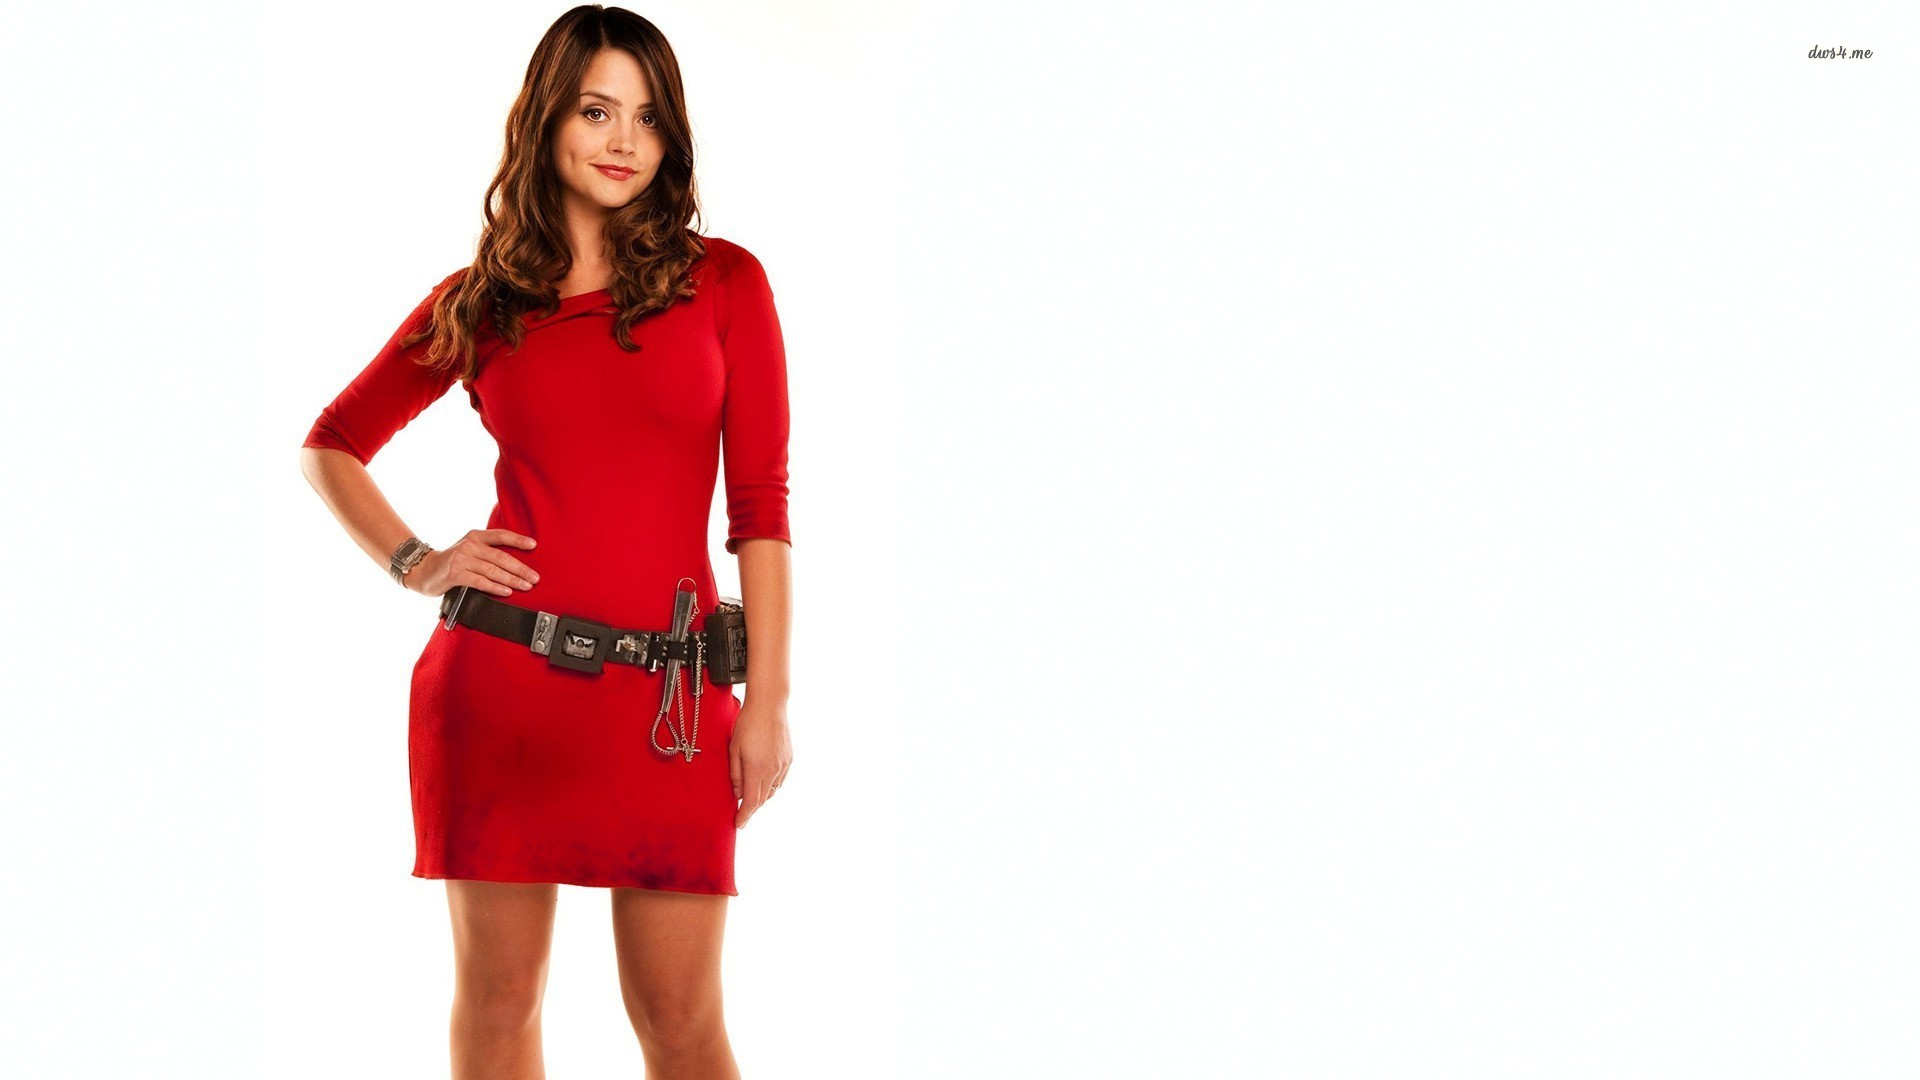 1920x1080 - Jenna-Louise Coleman Wallpapers 4